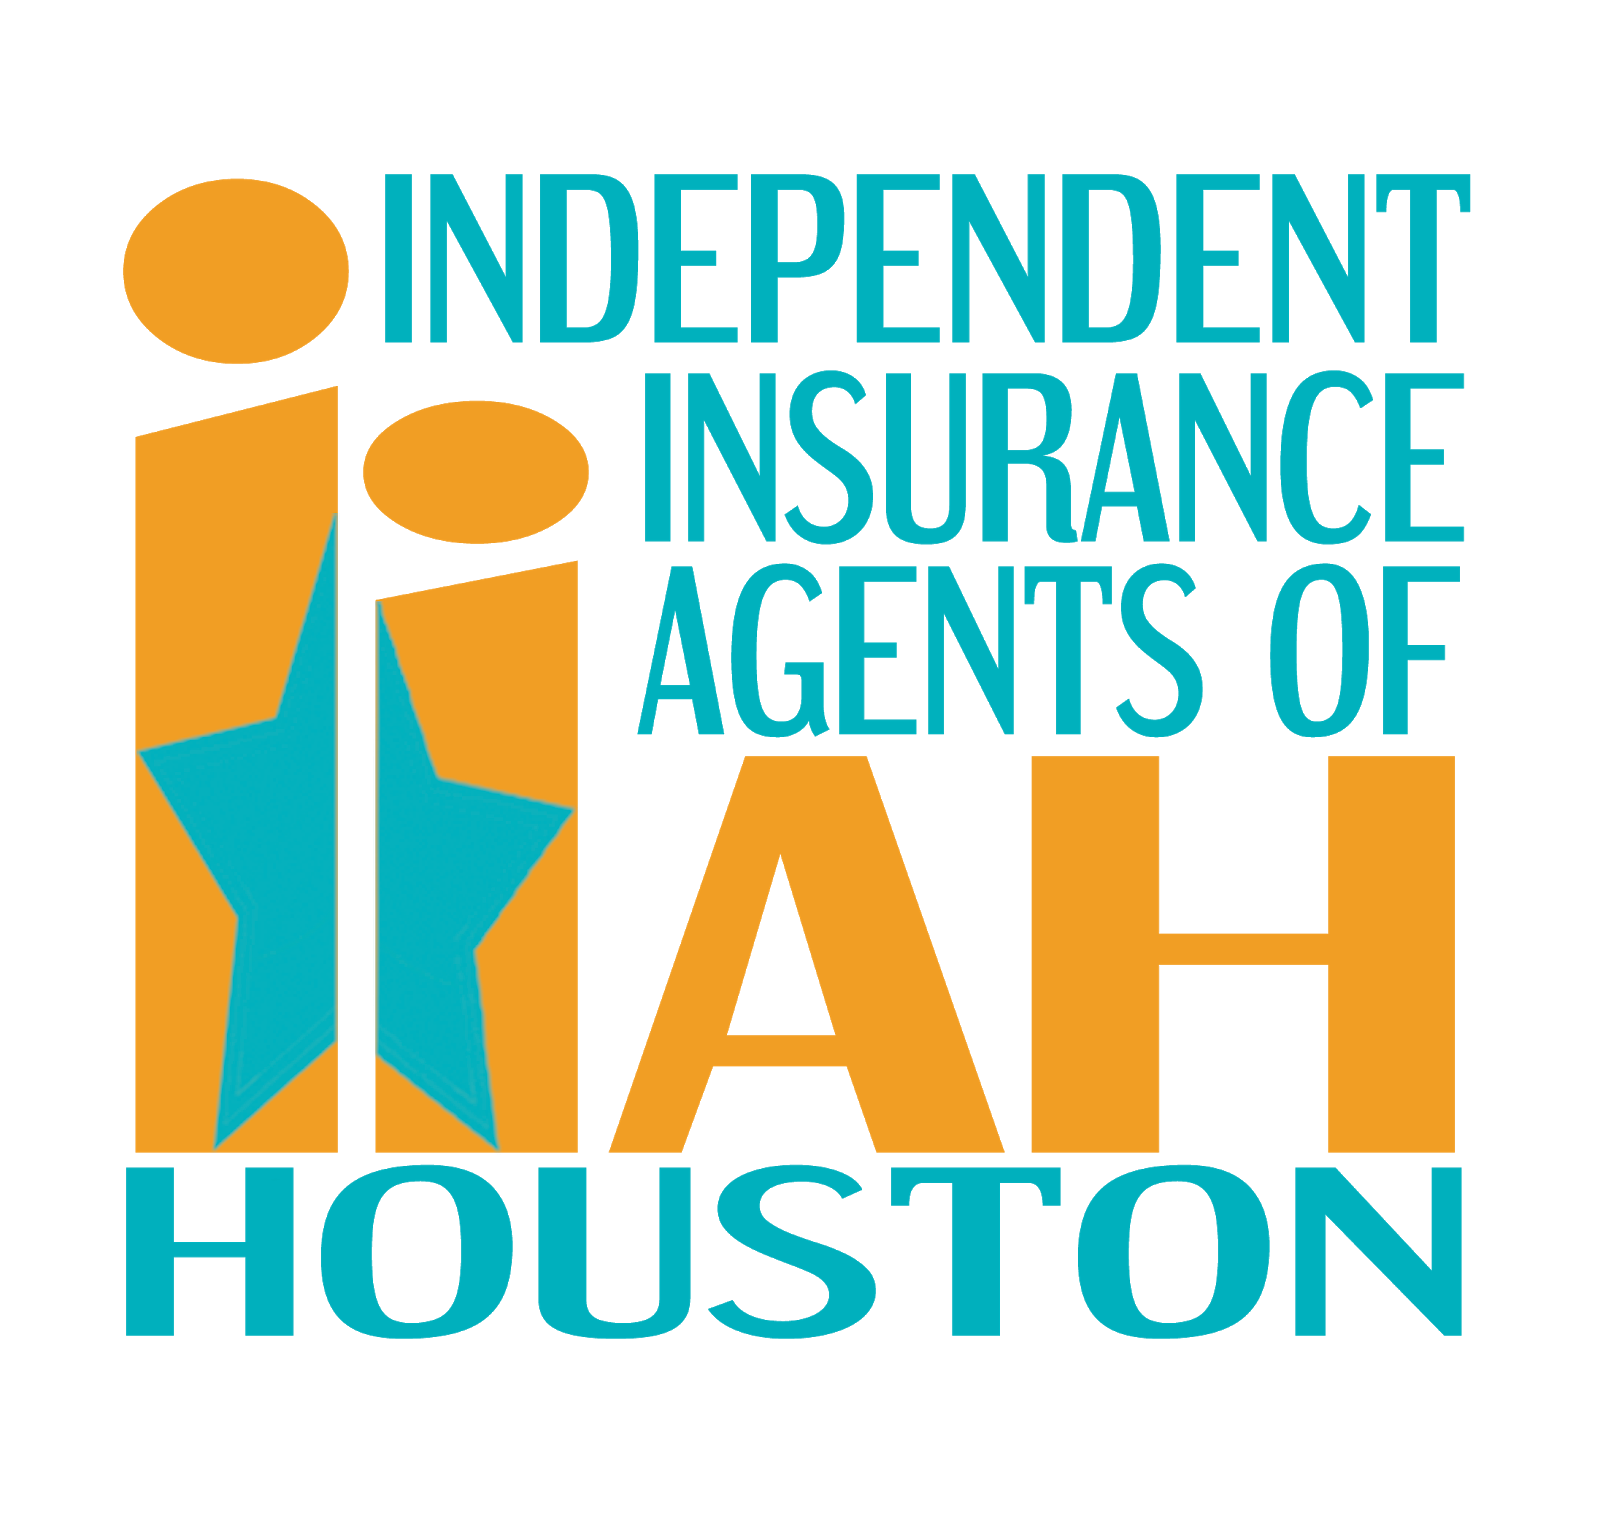 IIAH: Independent Insurance Agents of Houston